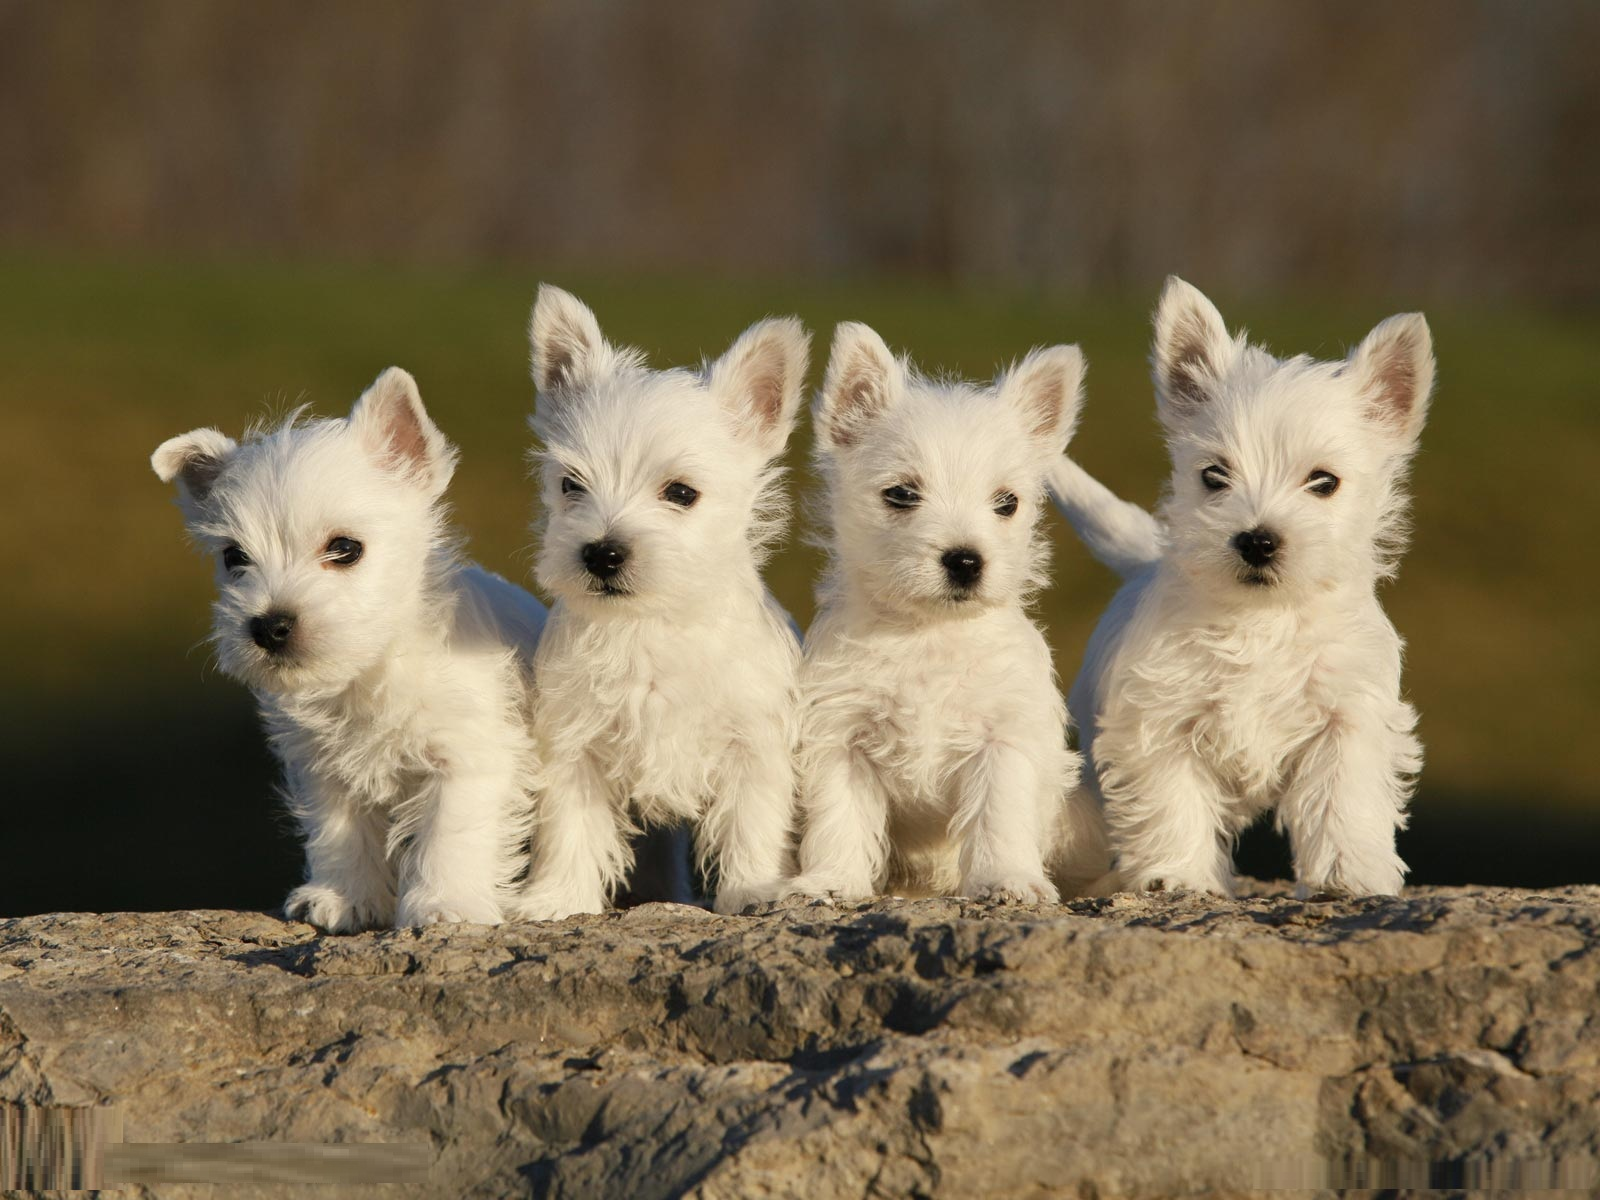 White Cairn Terrier Puppy West Highland White Te...